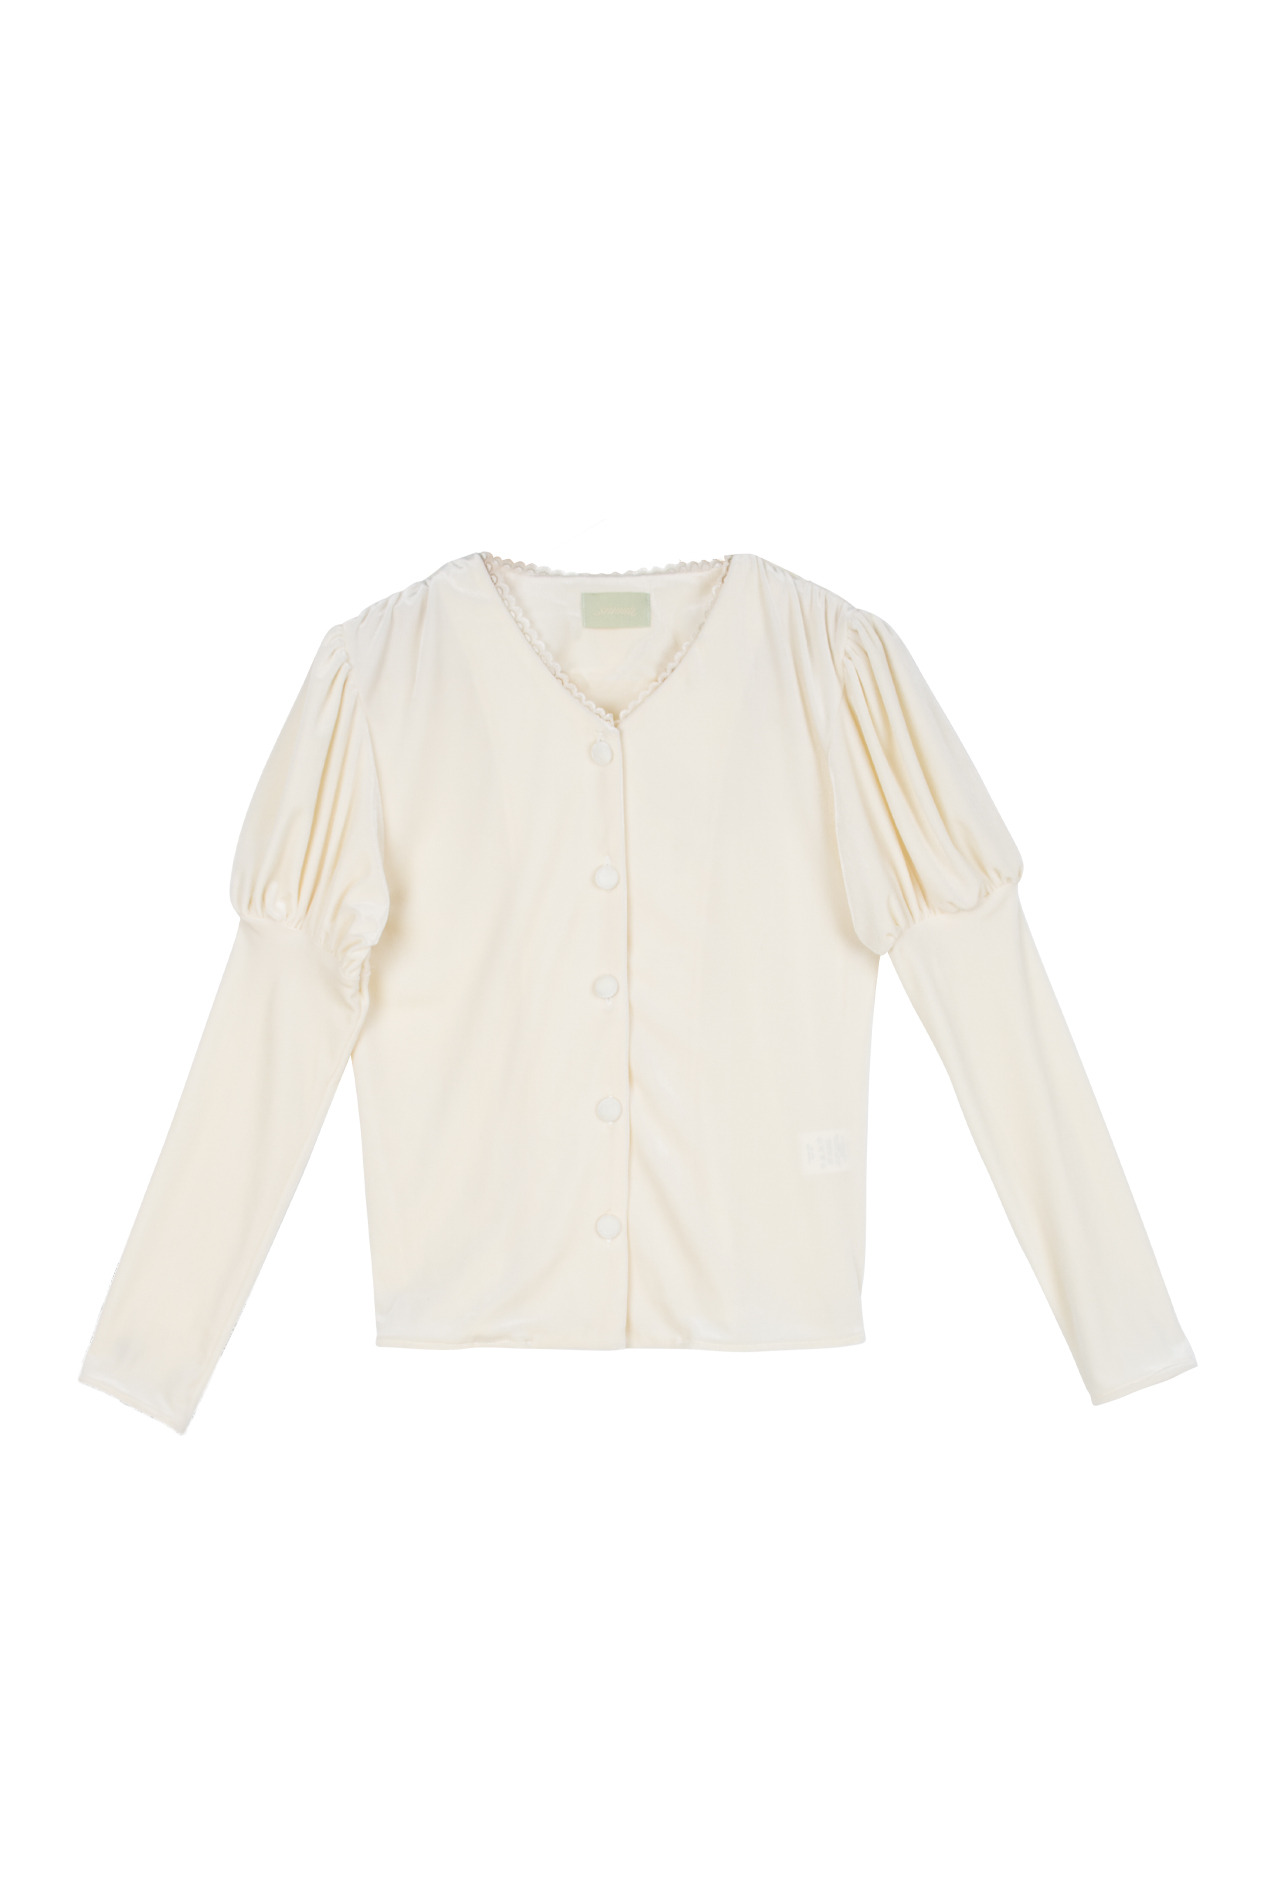 Soff blouse(cream)